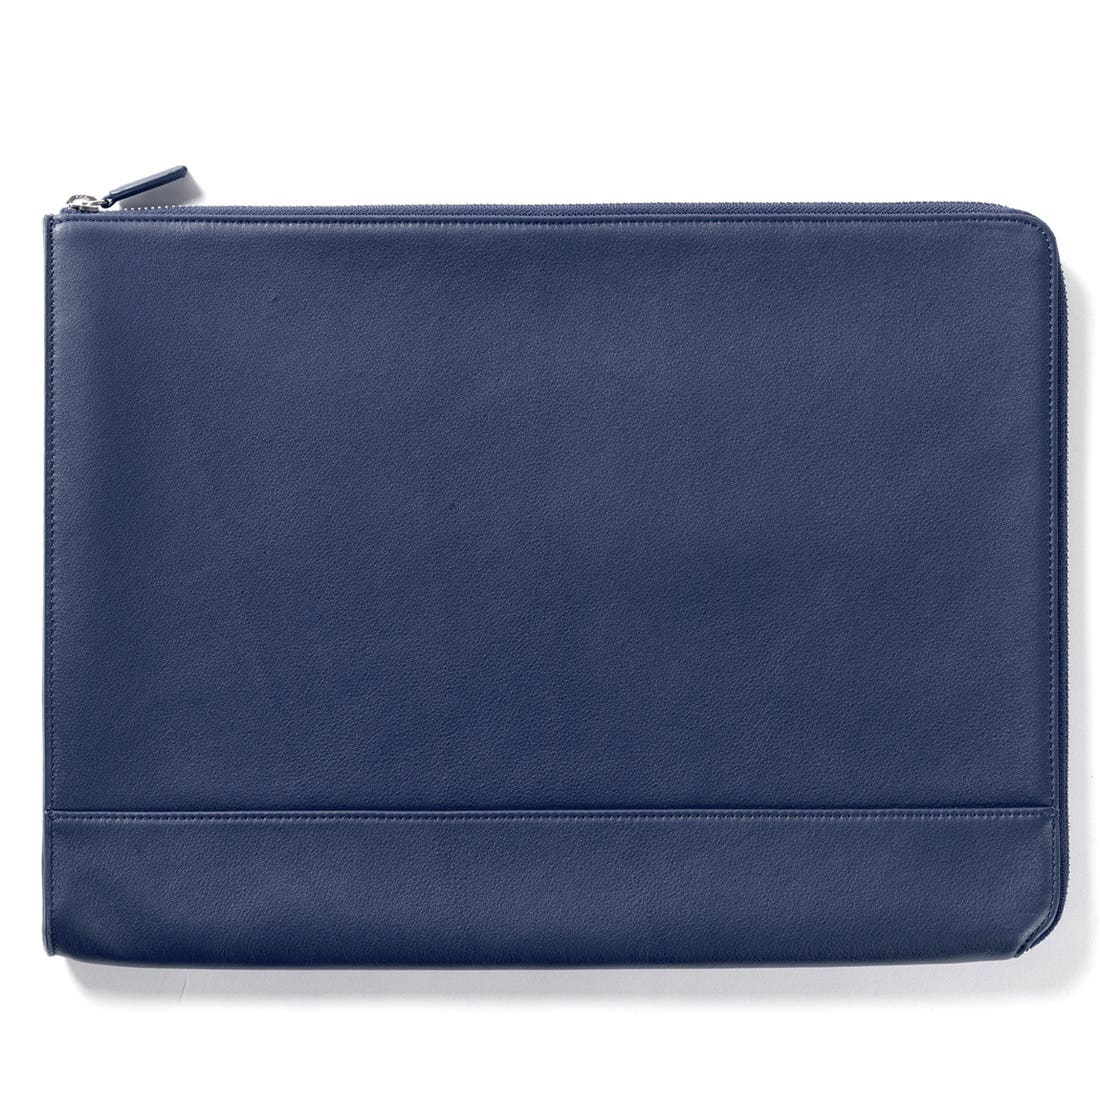 Gusseted Document Holder